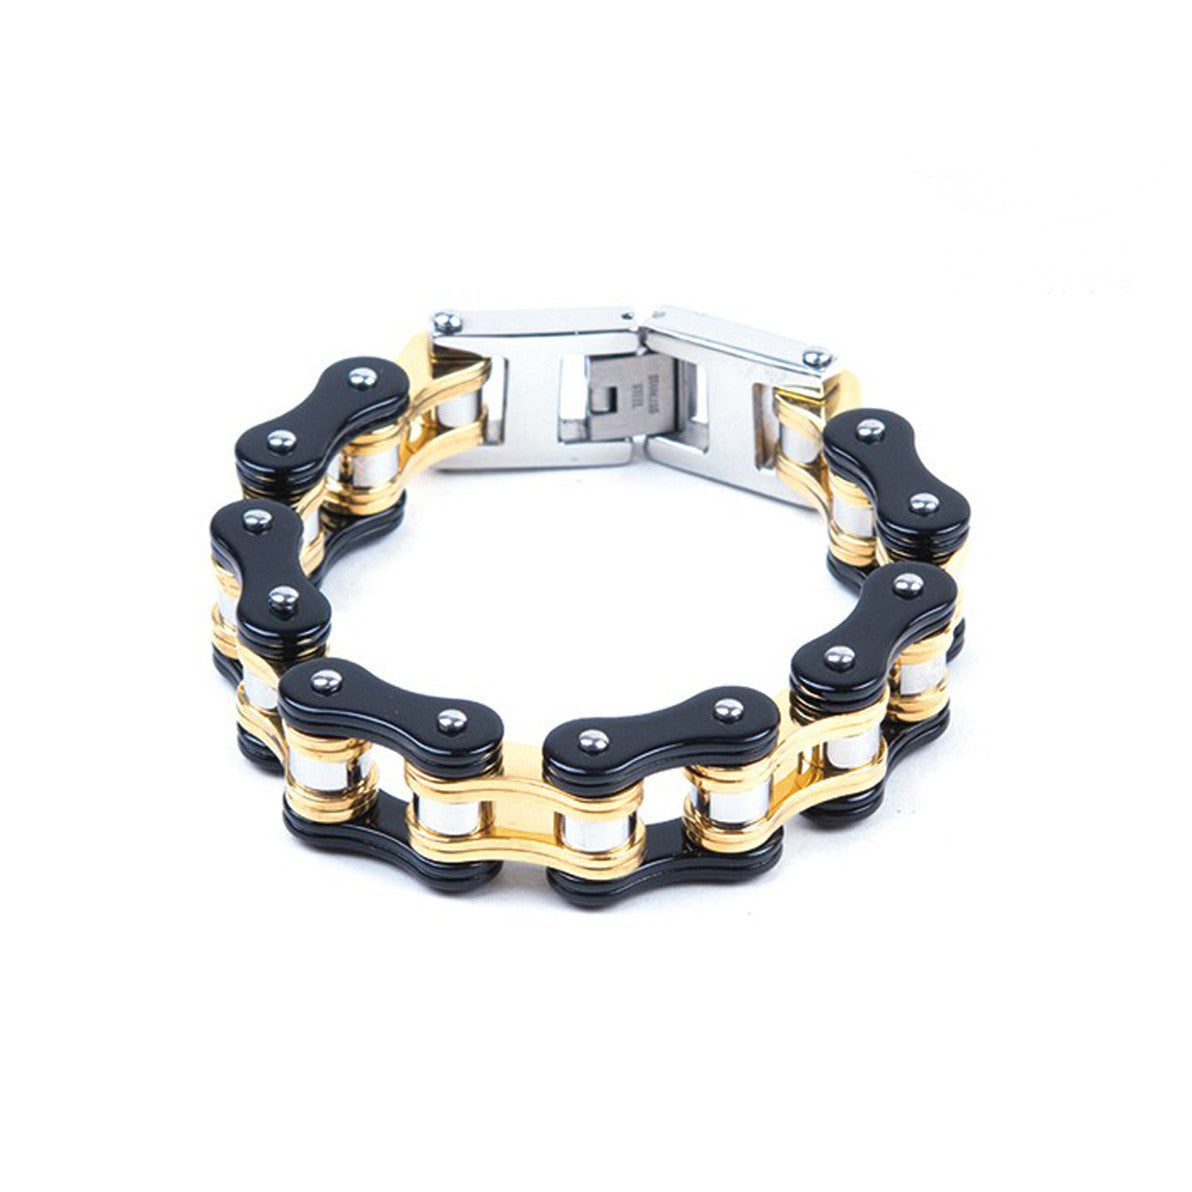 Black & Gold Stainless Steel Motorcycle Chain Bracelet